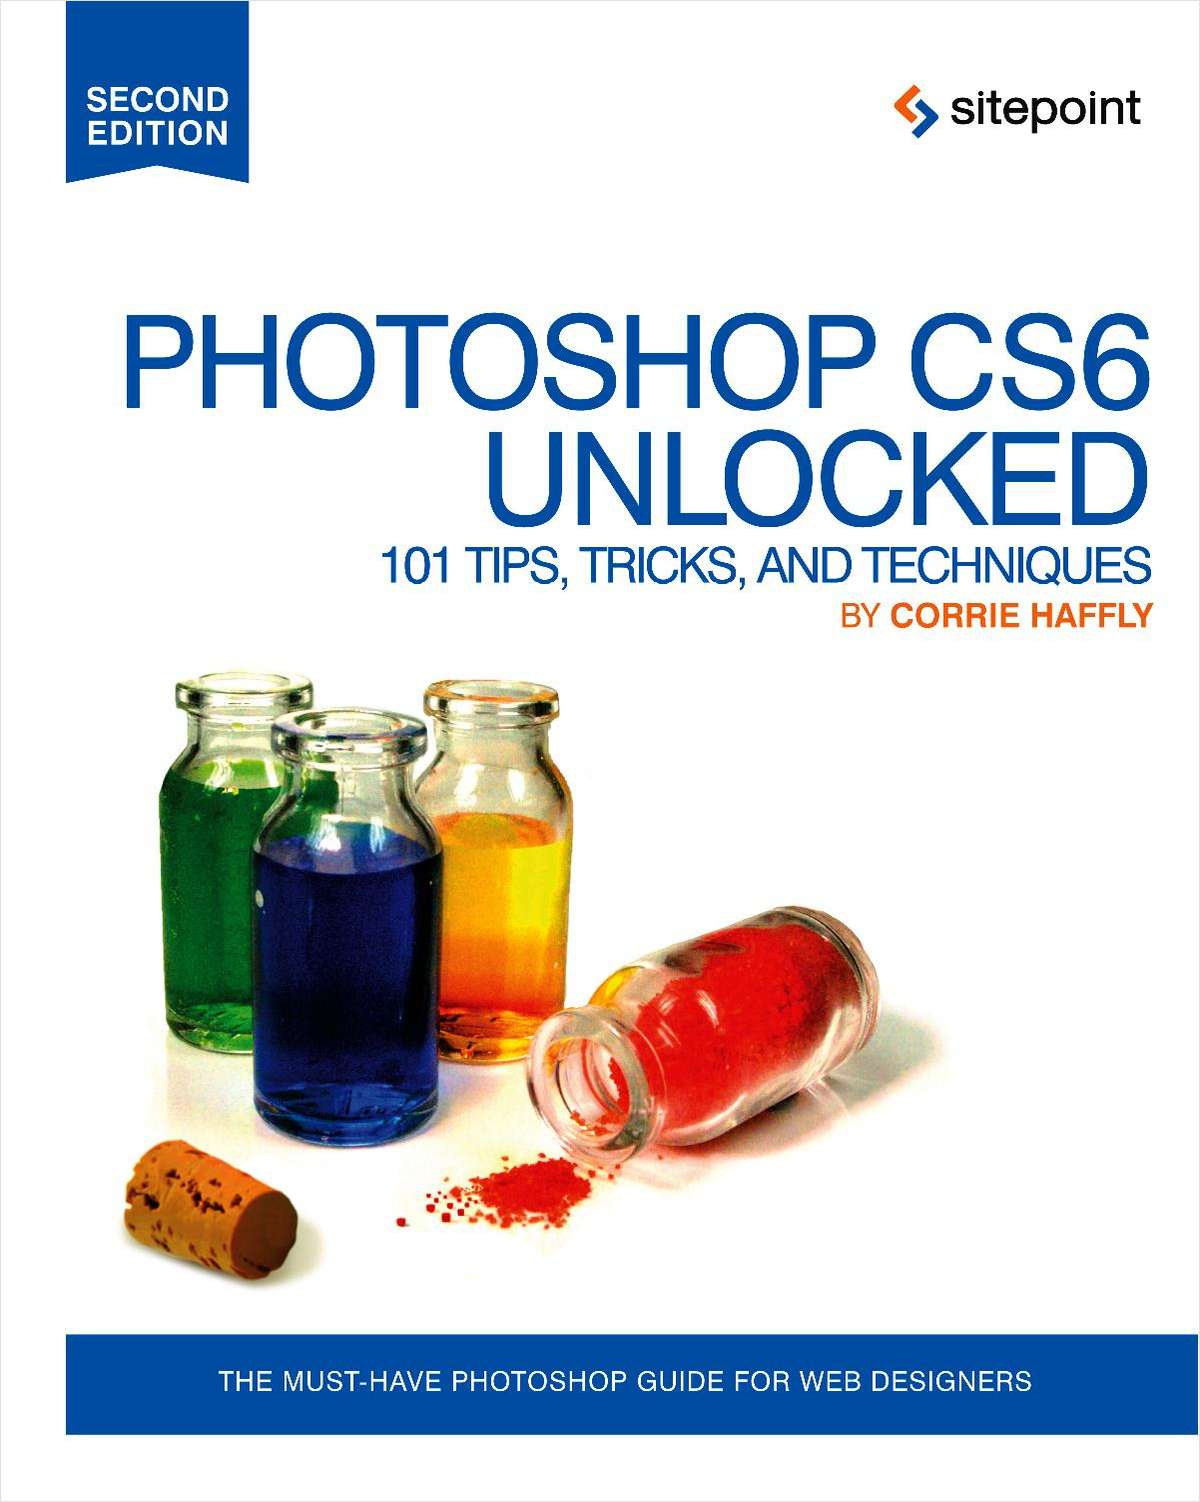 Photoshop CS6 Unlocked: 101 Tips, Tricks, & Techniques--Free 61 Page Preview